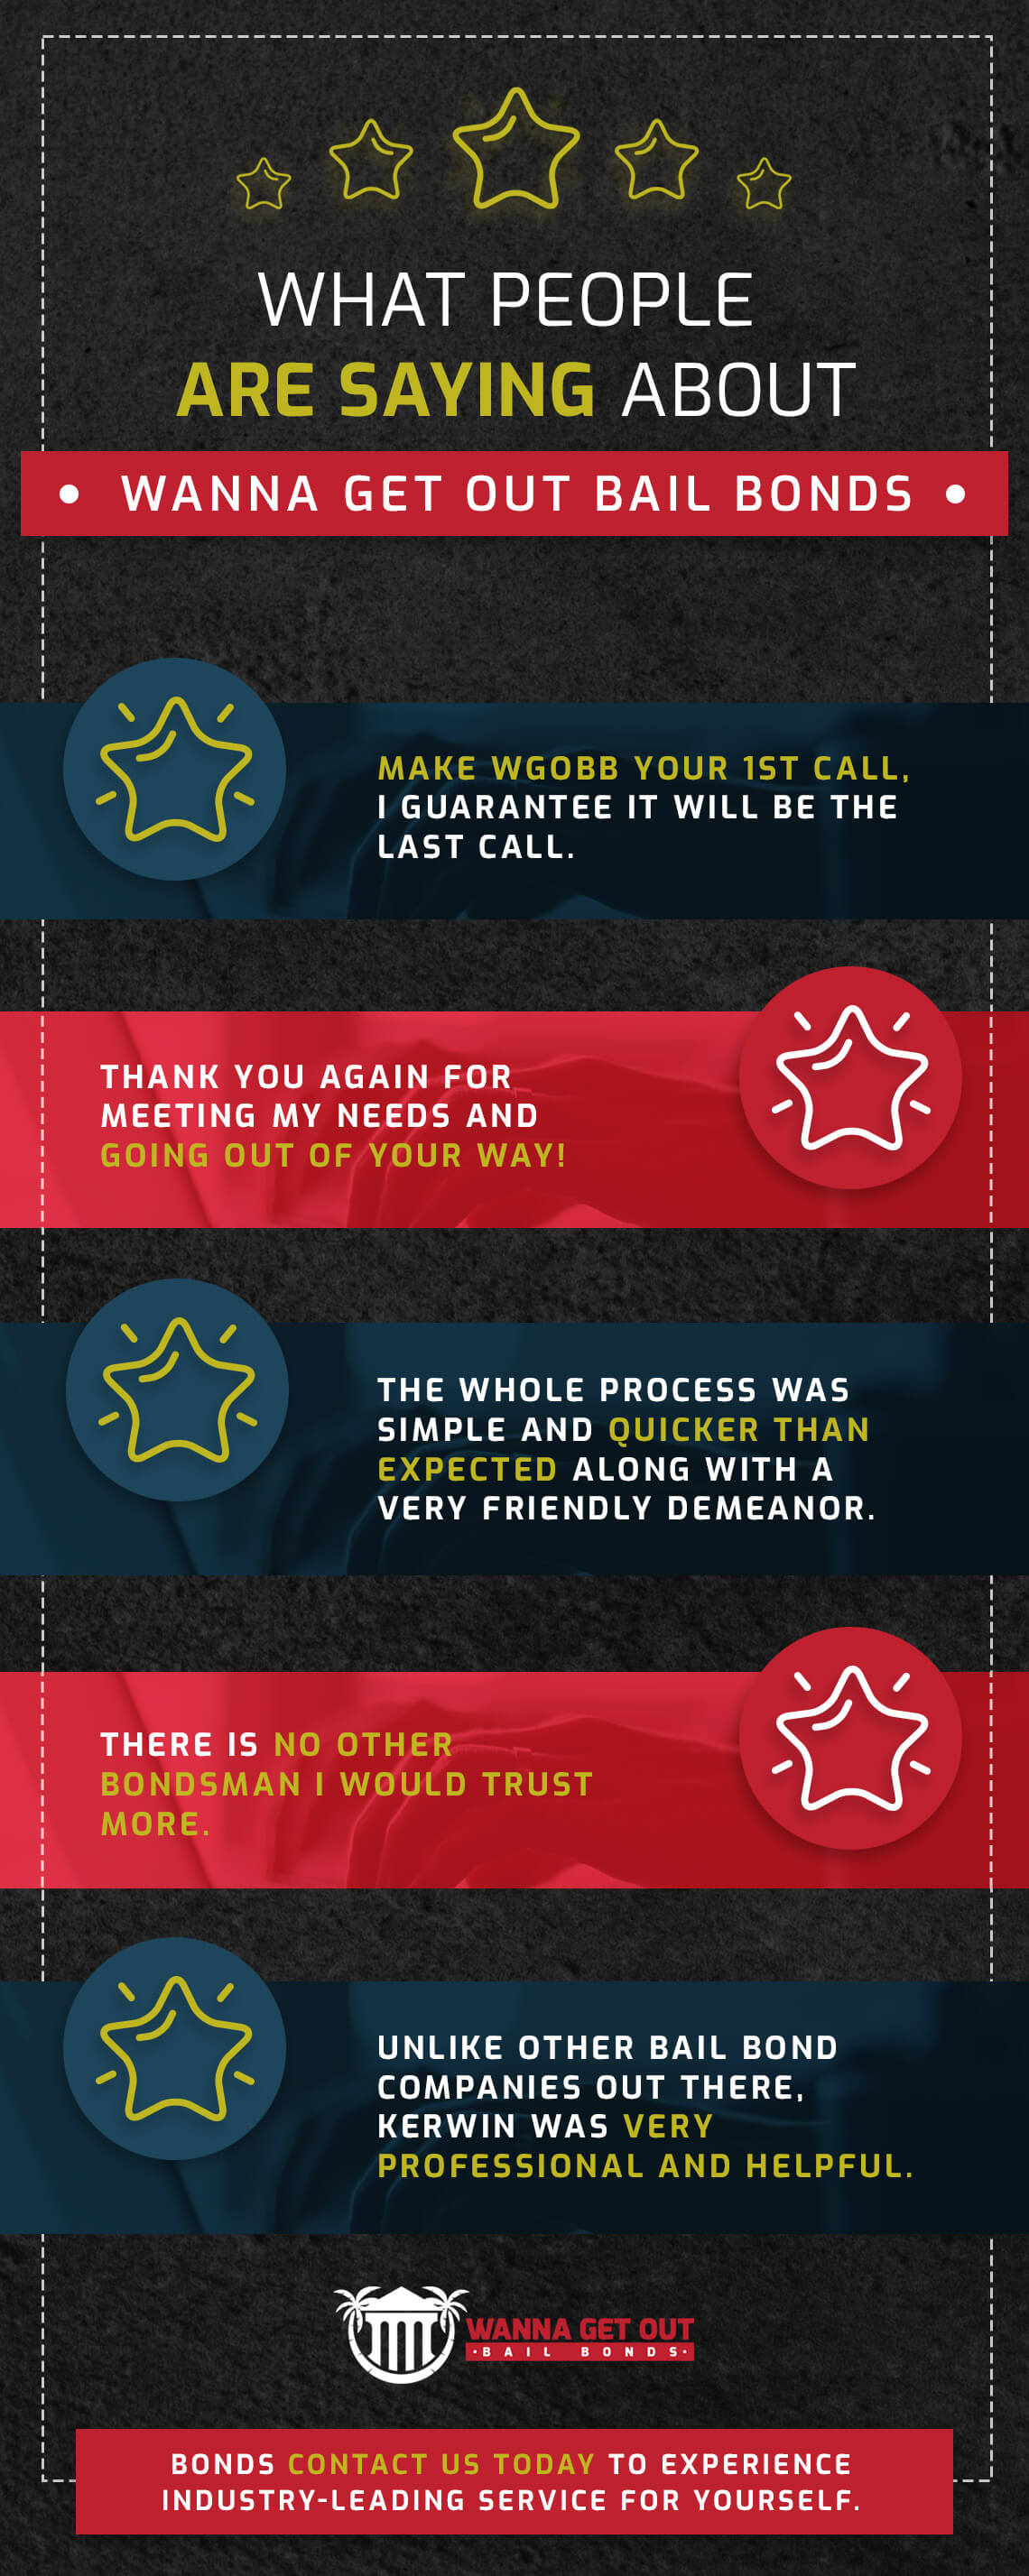 What People Are Saying About Wanna Get Out Bail Bonds Infographic